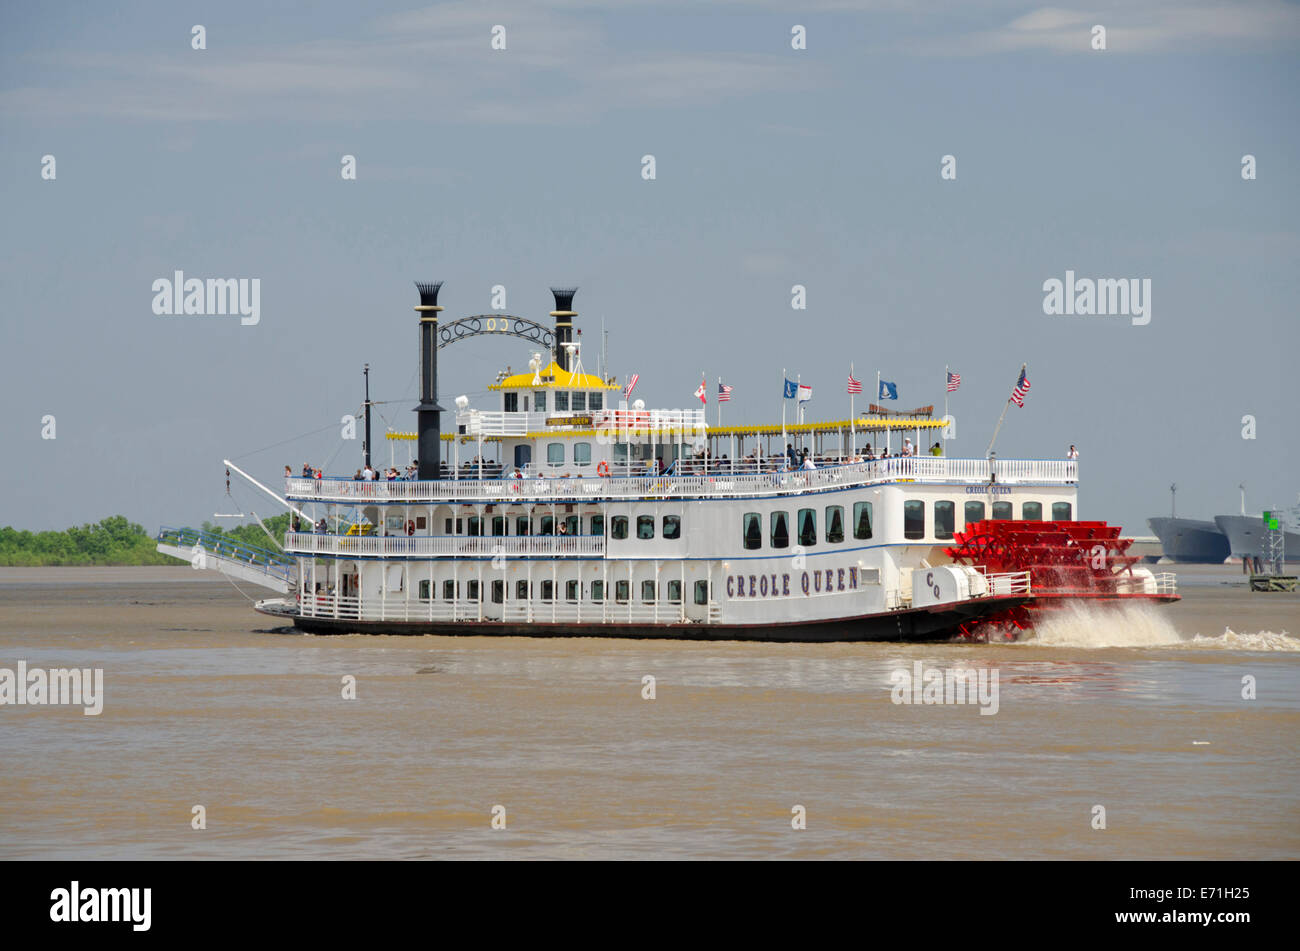 Mississippi River Tour Boat Stock Photos Amp Mississippi River Tour Boat Stock Images Alamy